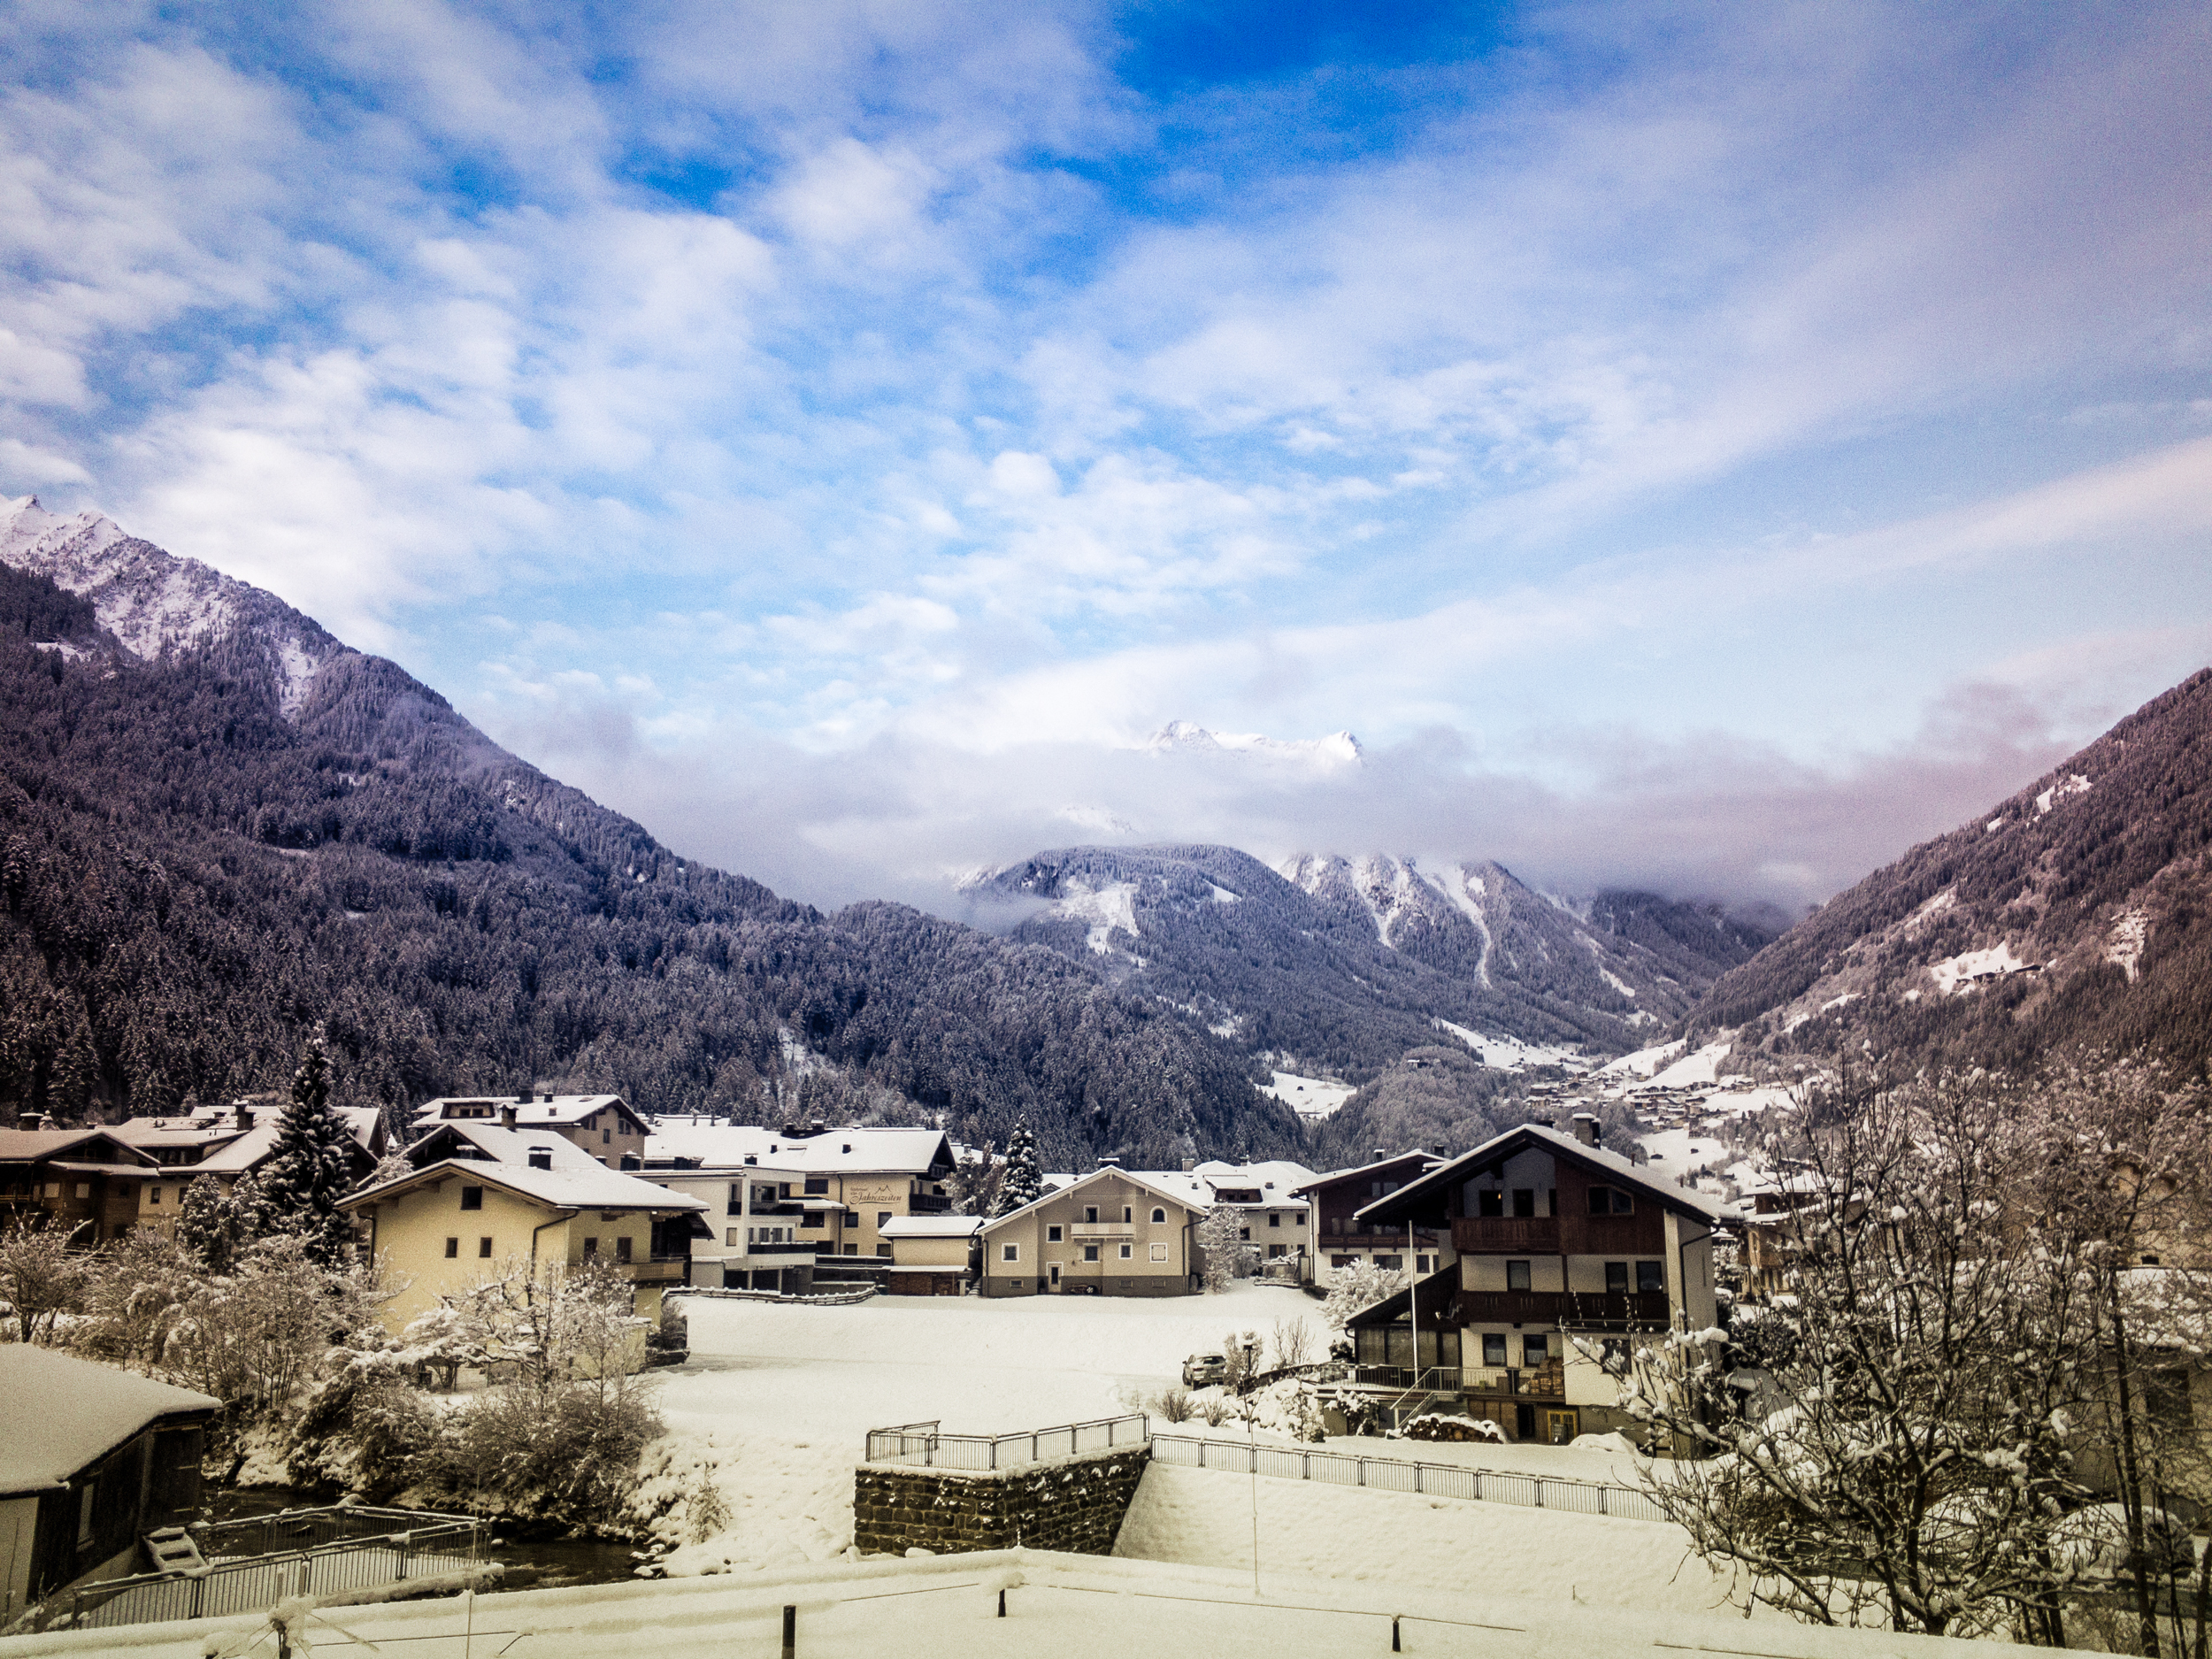 mayrhofen winter 17_02.jpg